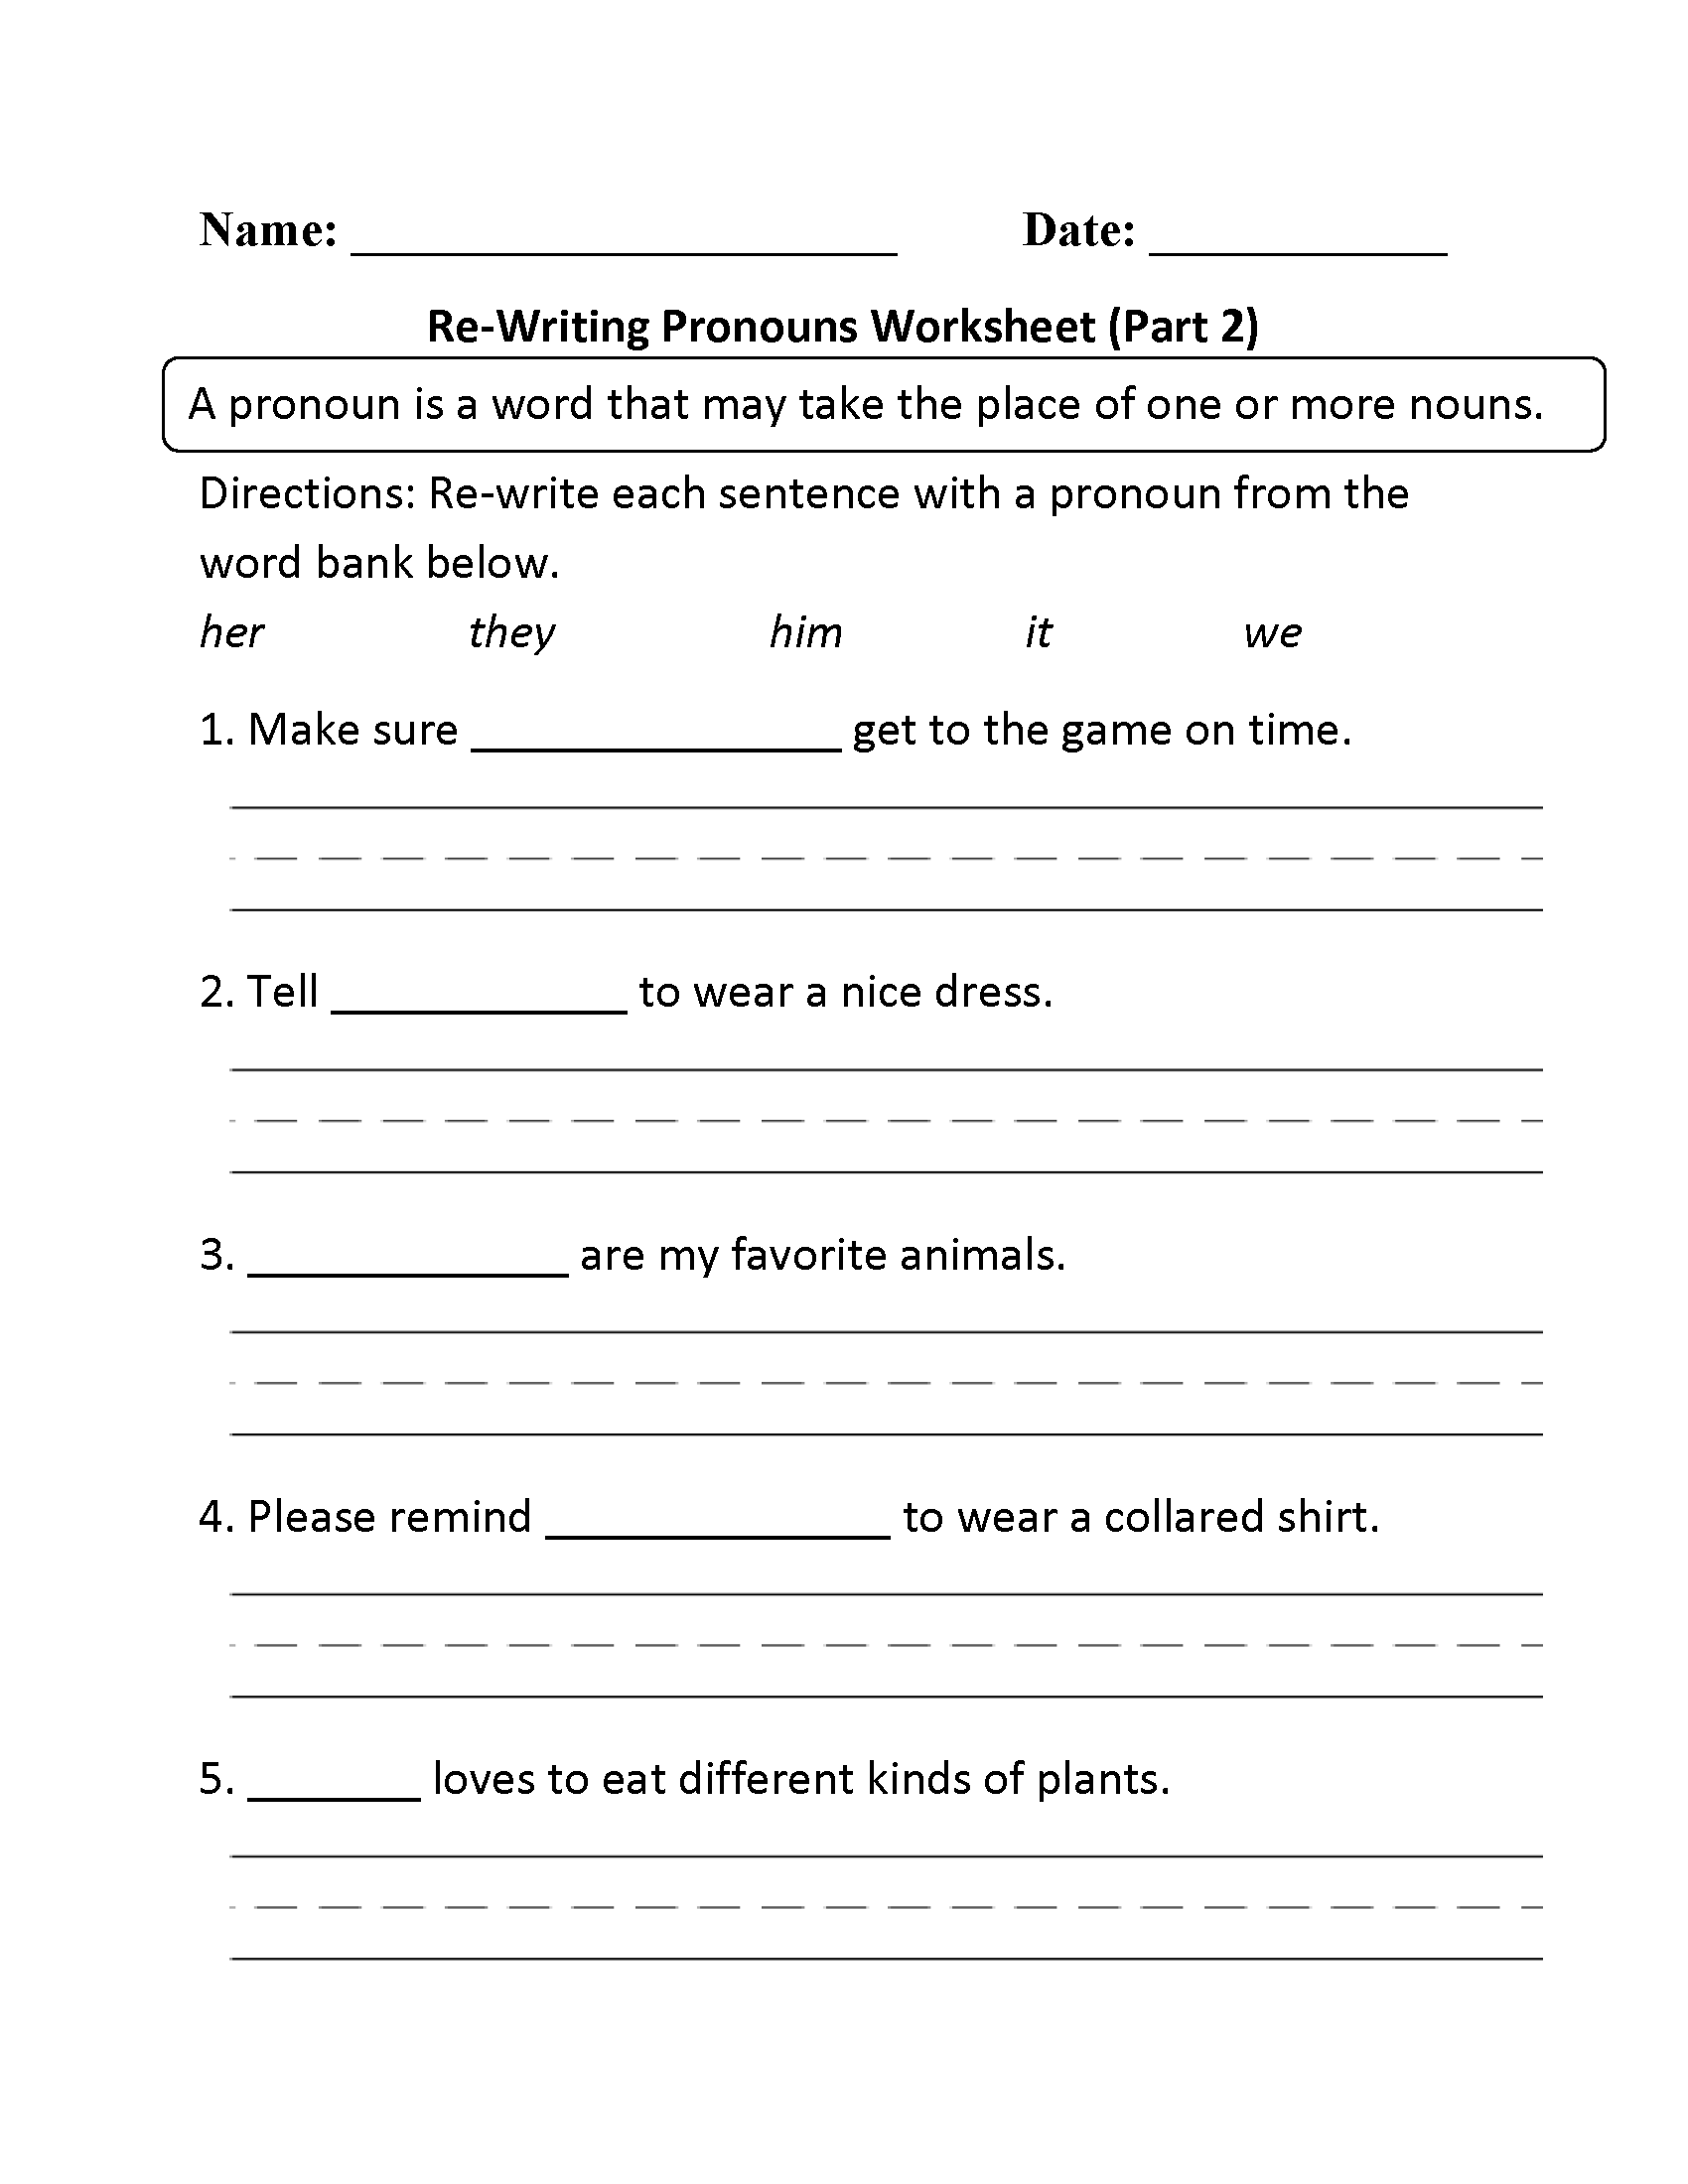 15 Best Images Of Subject Pronouns Worksheet 4th Grade